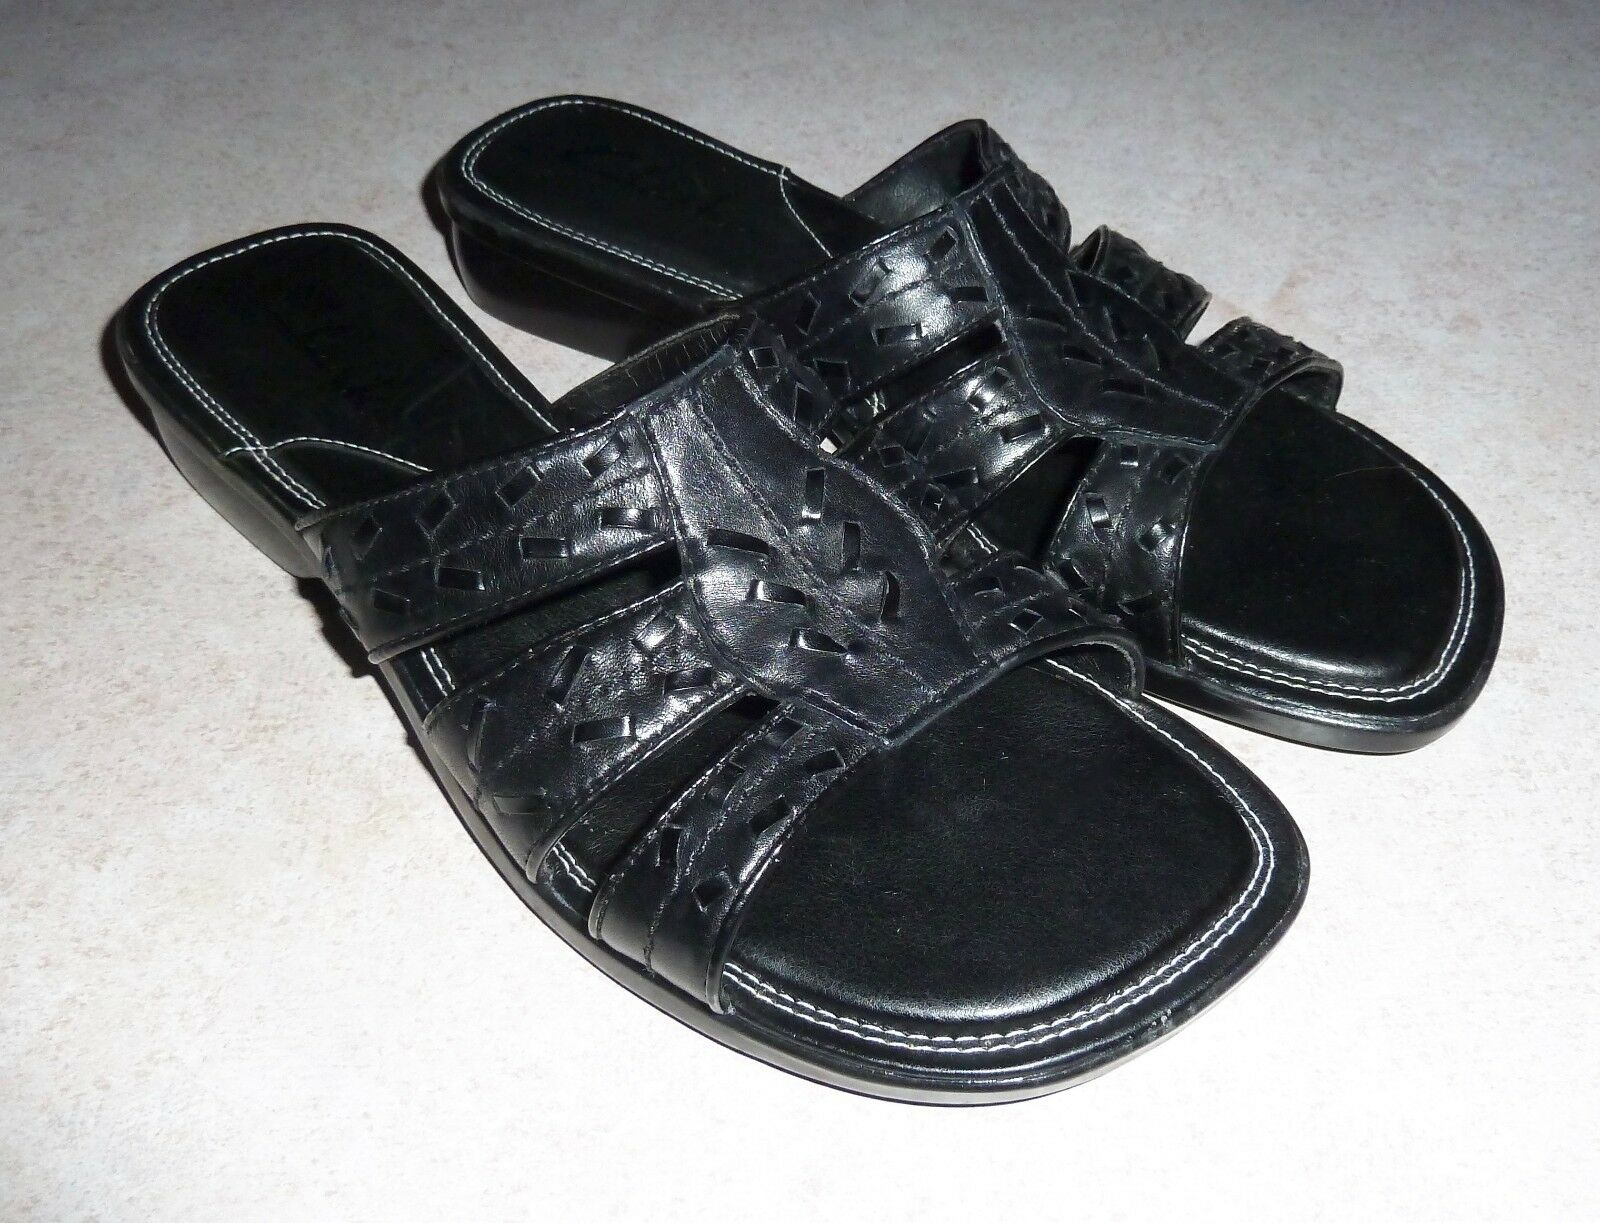 CLARKS - SANDALS BLACK LEATHER LOW-WEDGE SLIDE SANDALS - - LADIES 6.5M 27a7f2